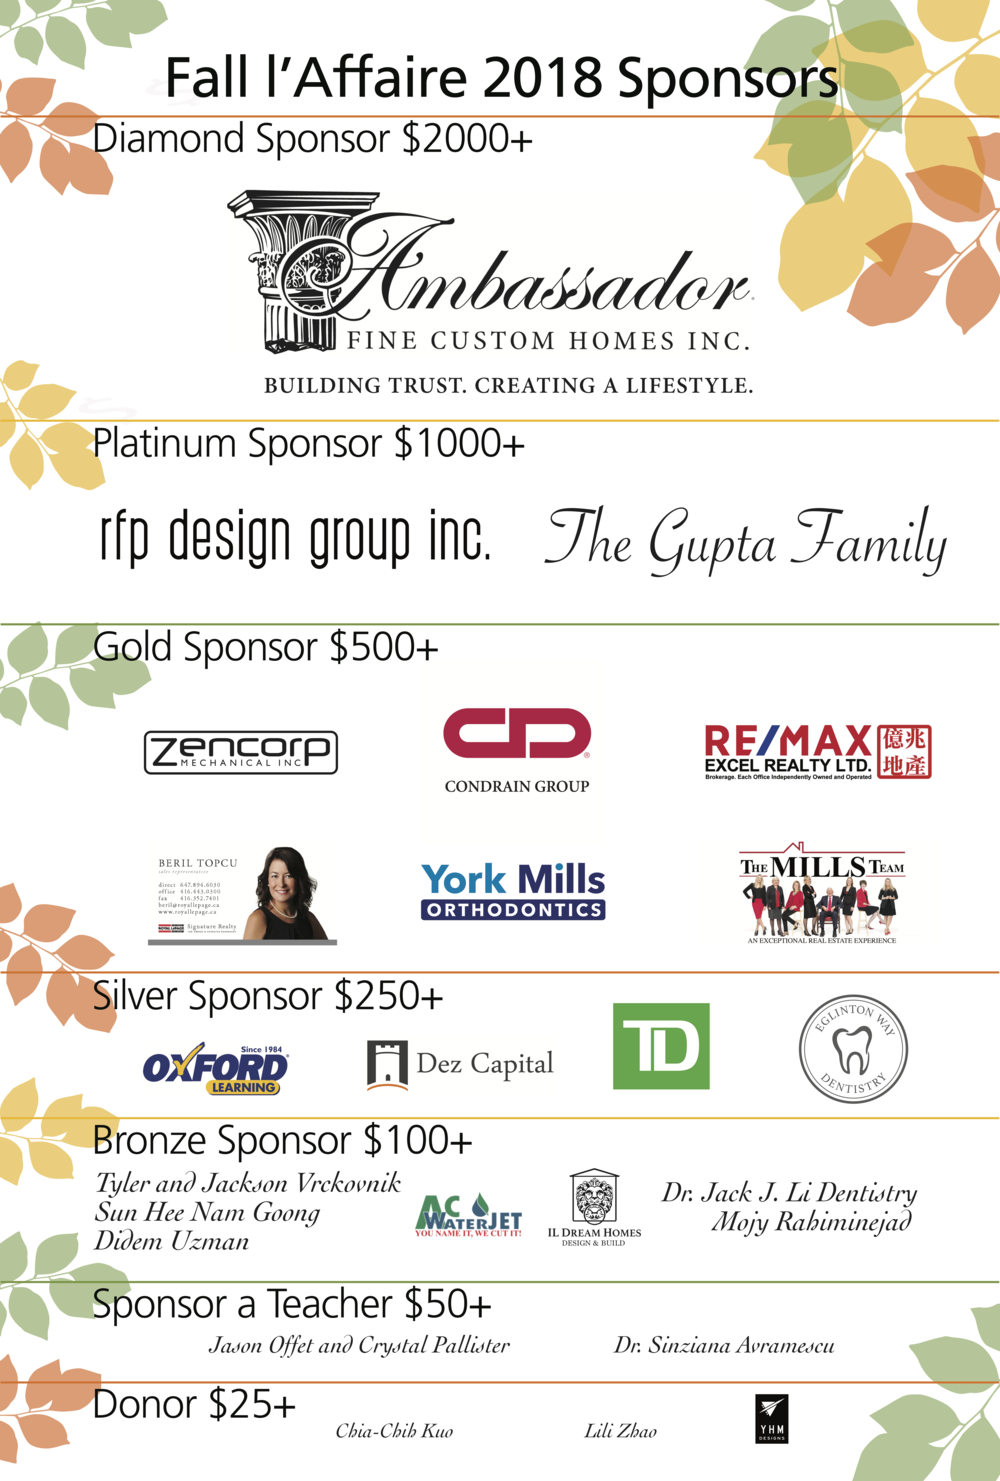 Fall l'Affaire 2018 Sponsors.png